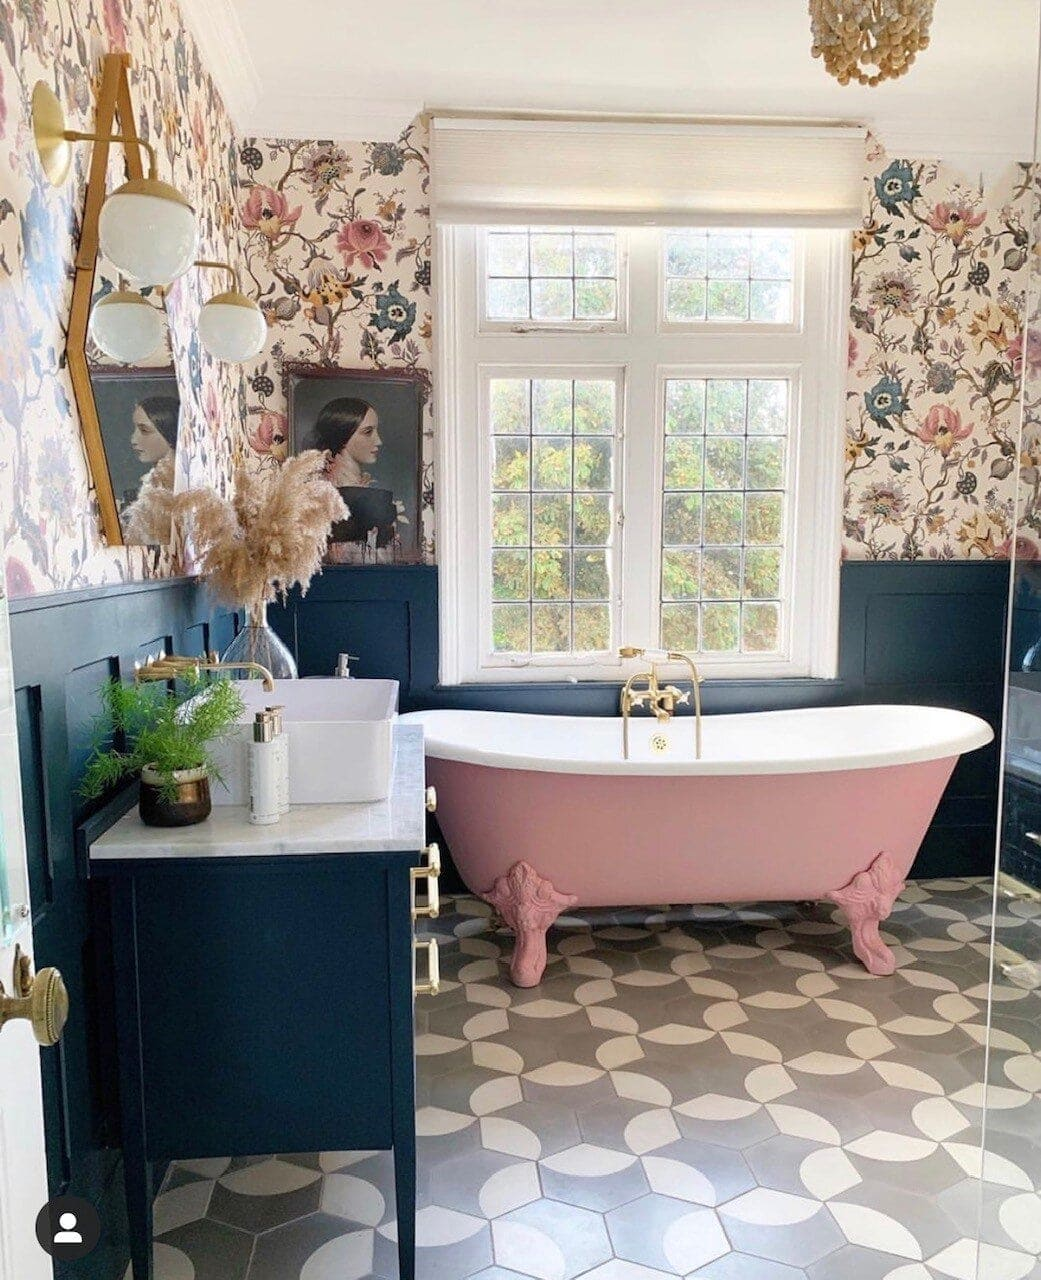 Katie showing us how to have the perfect pretty bathroom! Instagram: @comedowntothewoods